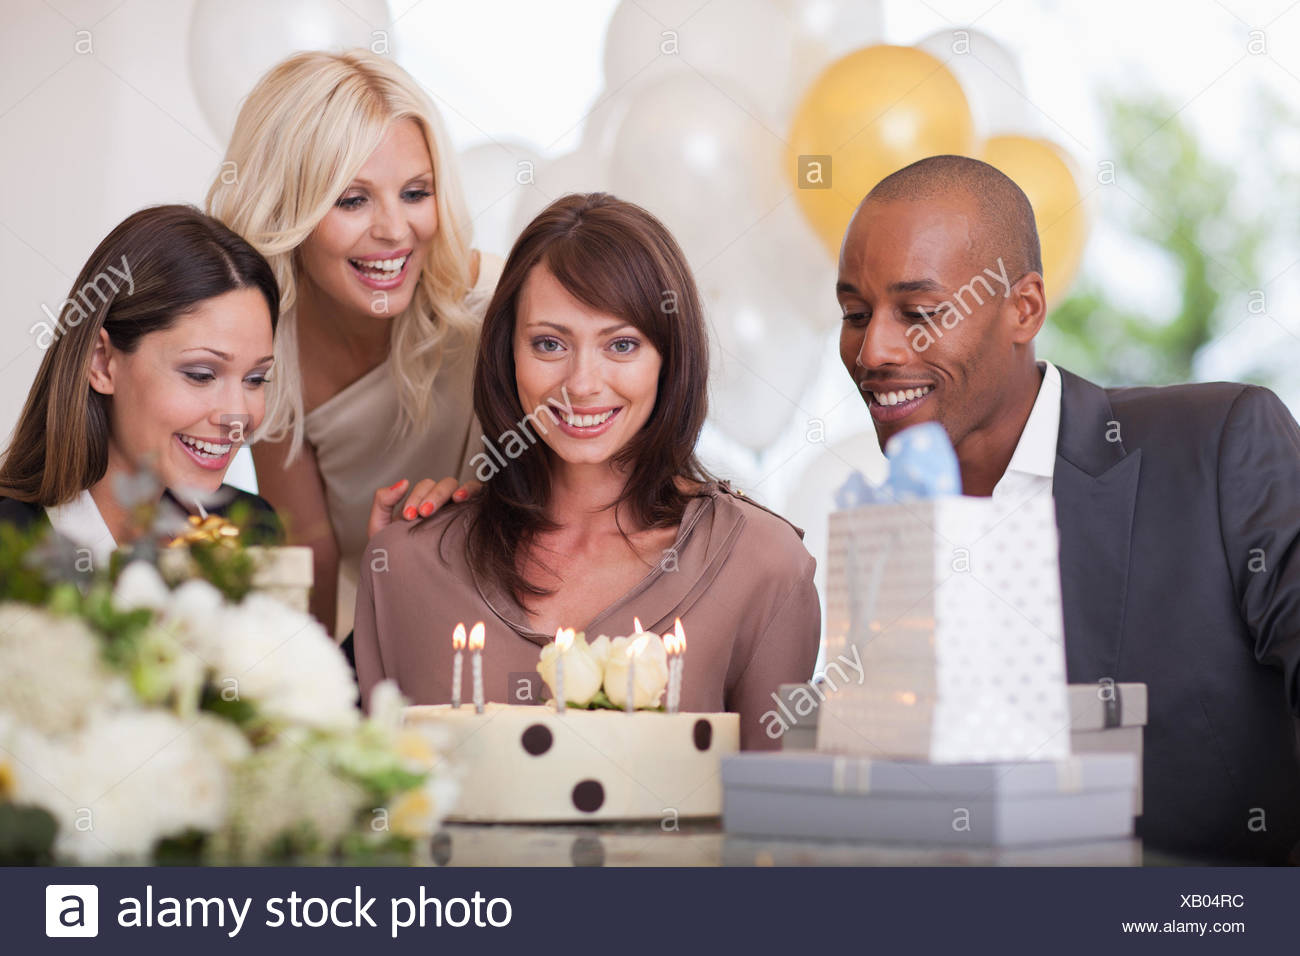 Friends at birthday party - Stock Image